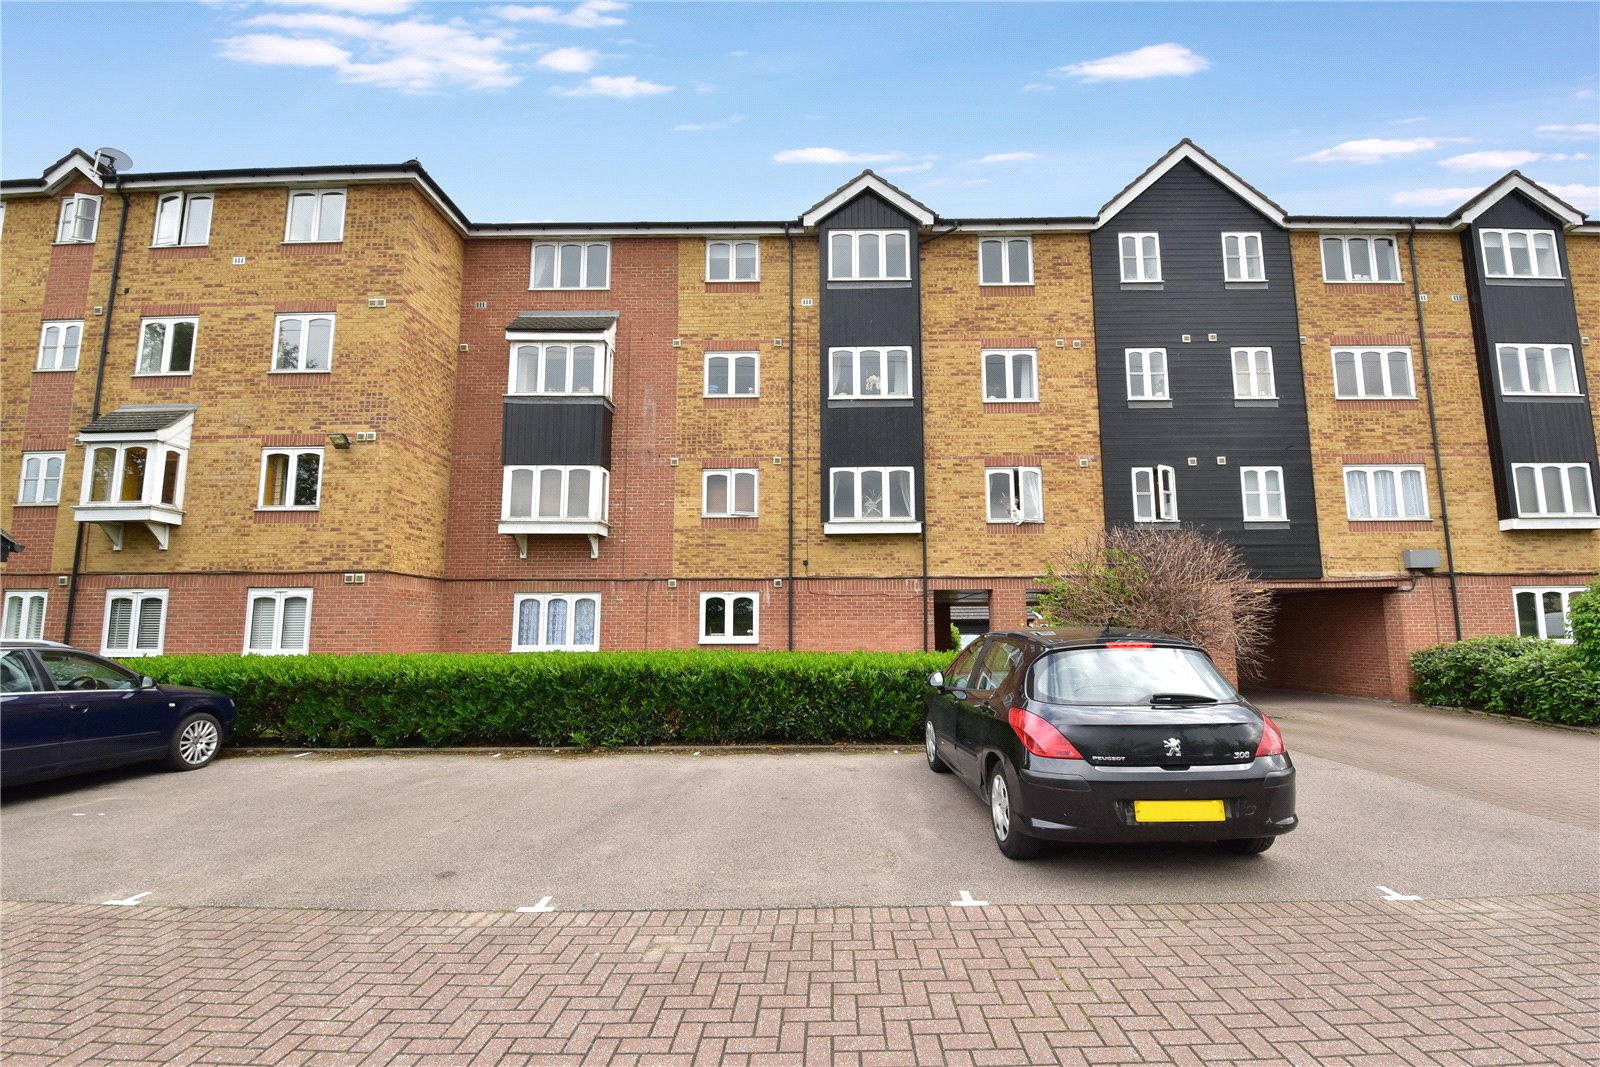 Dunlop Close, Dartford, Kent, DA1